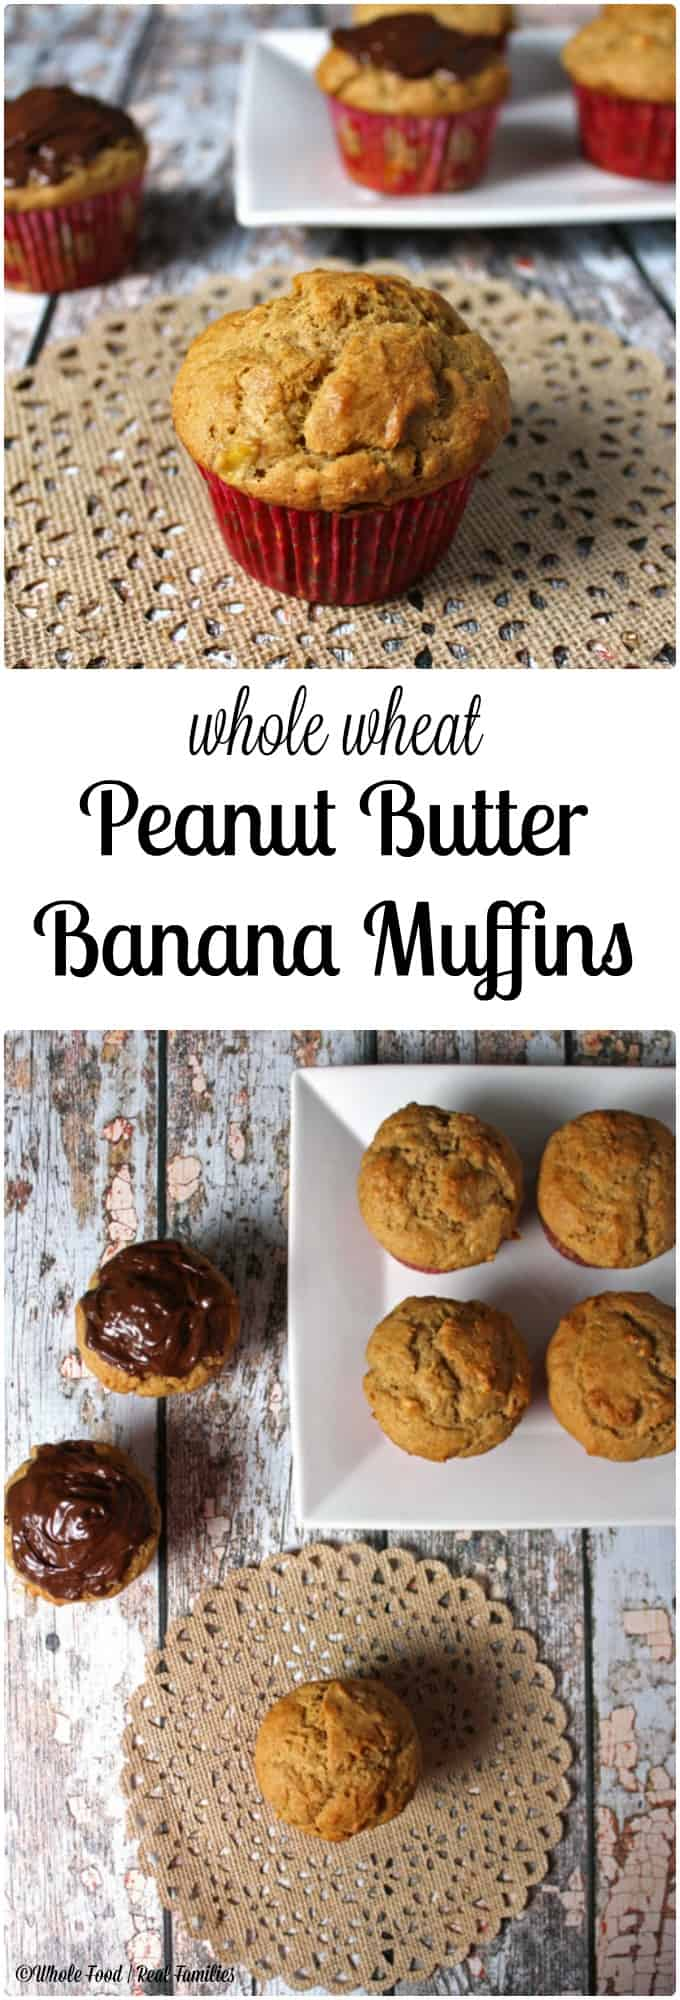 Peanut Butter Banana Muffins were a happy accident in my kitchen when I ran out of bananas. Now they are my kids favorite. Whole wheat and sweet, a perfect healthy breakfast.